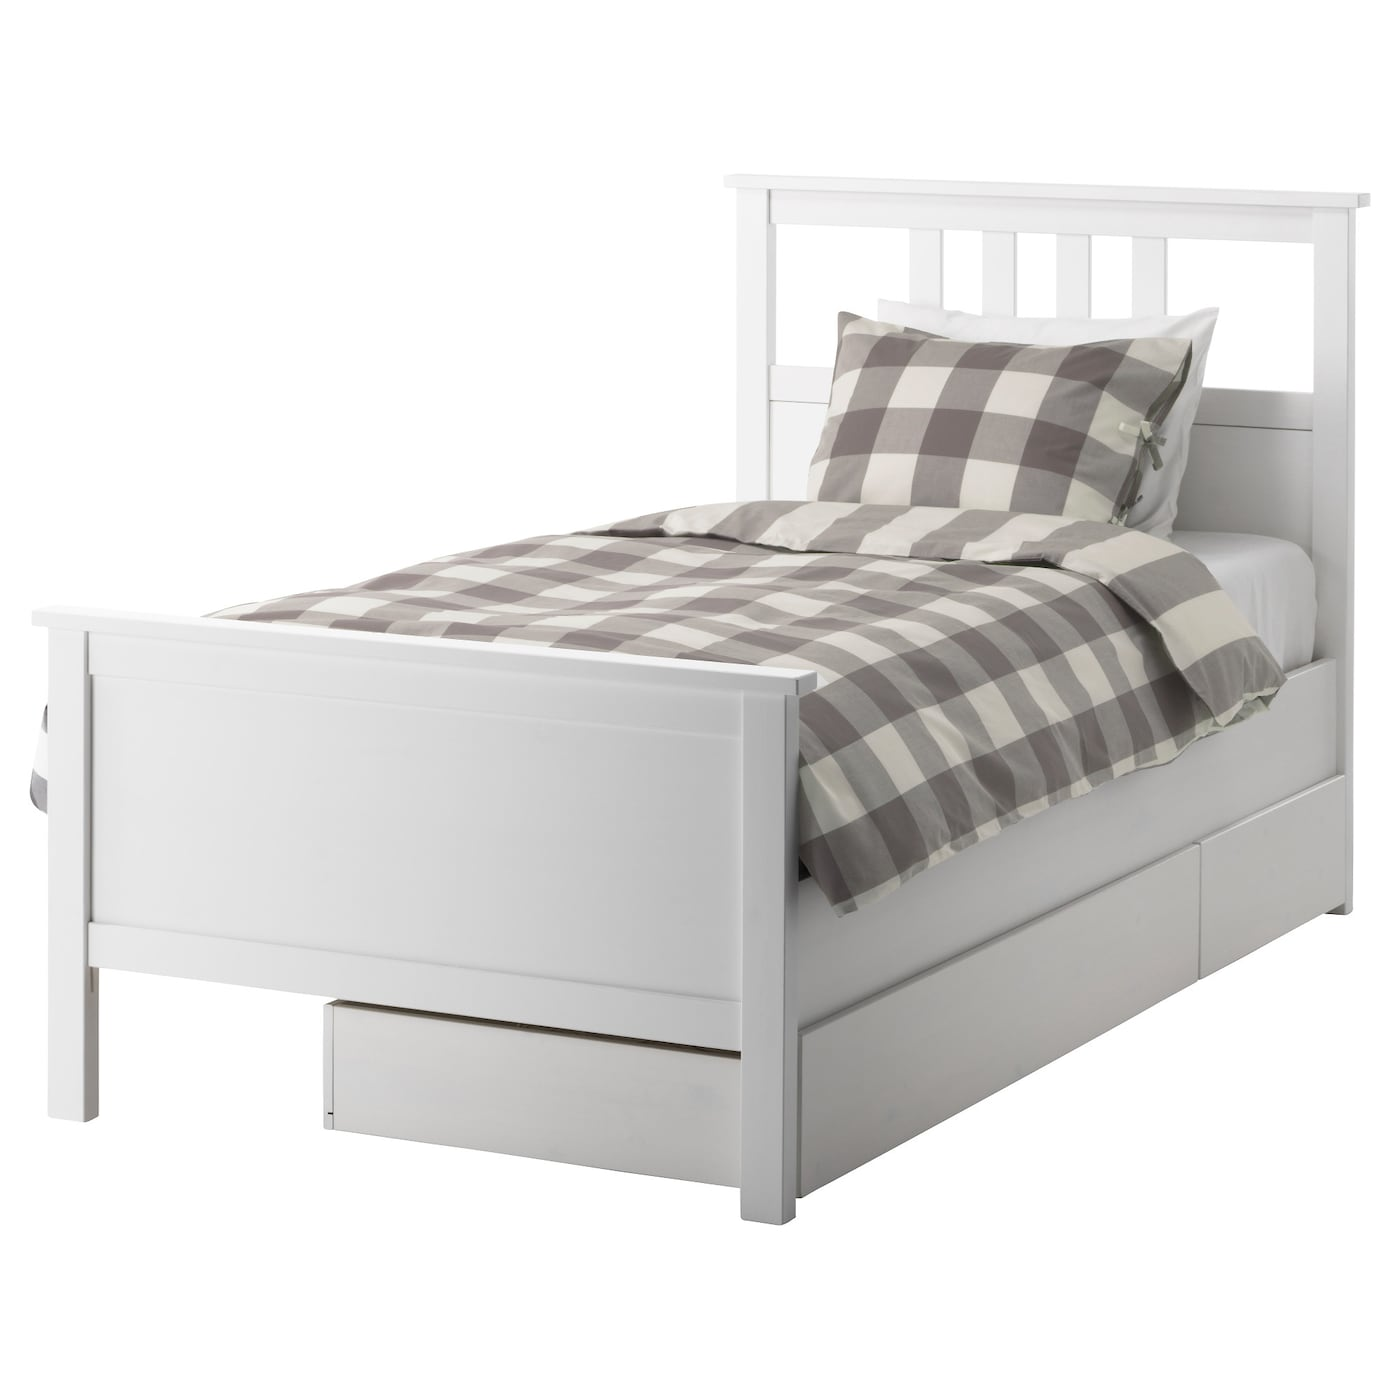 Ikea Hemnes Bed Frame With 2 Storage Bo